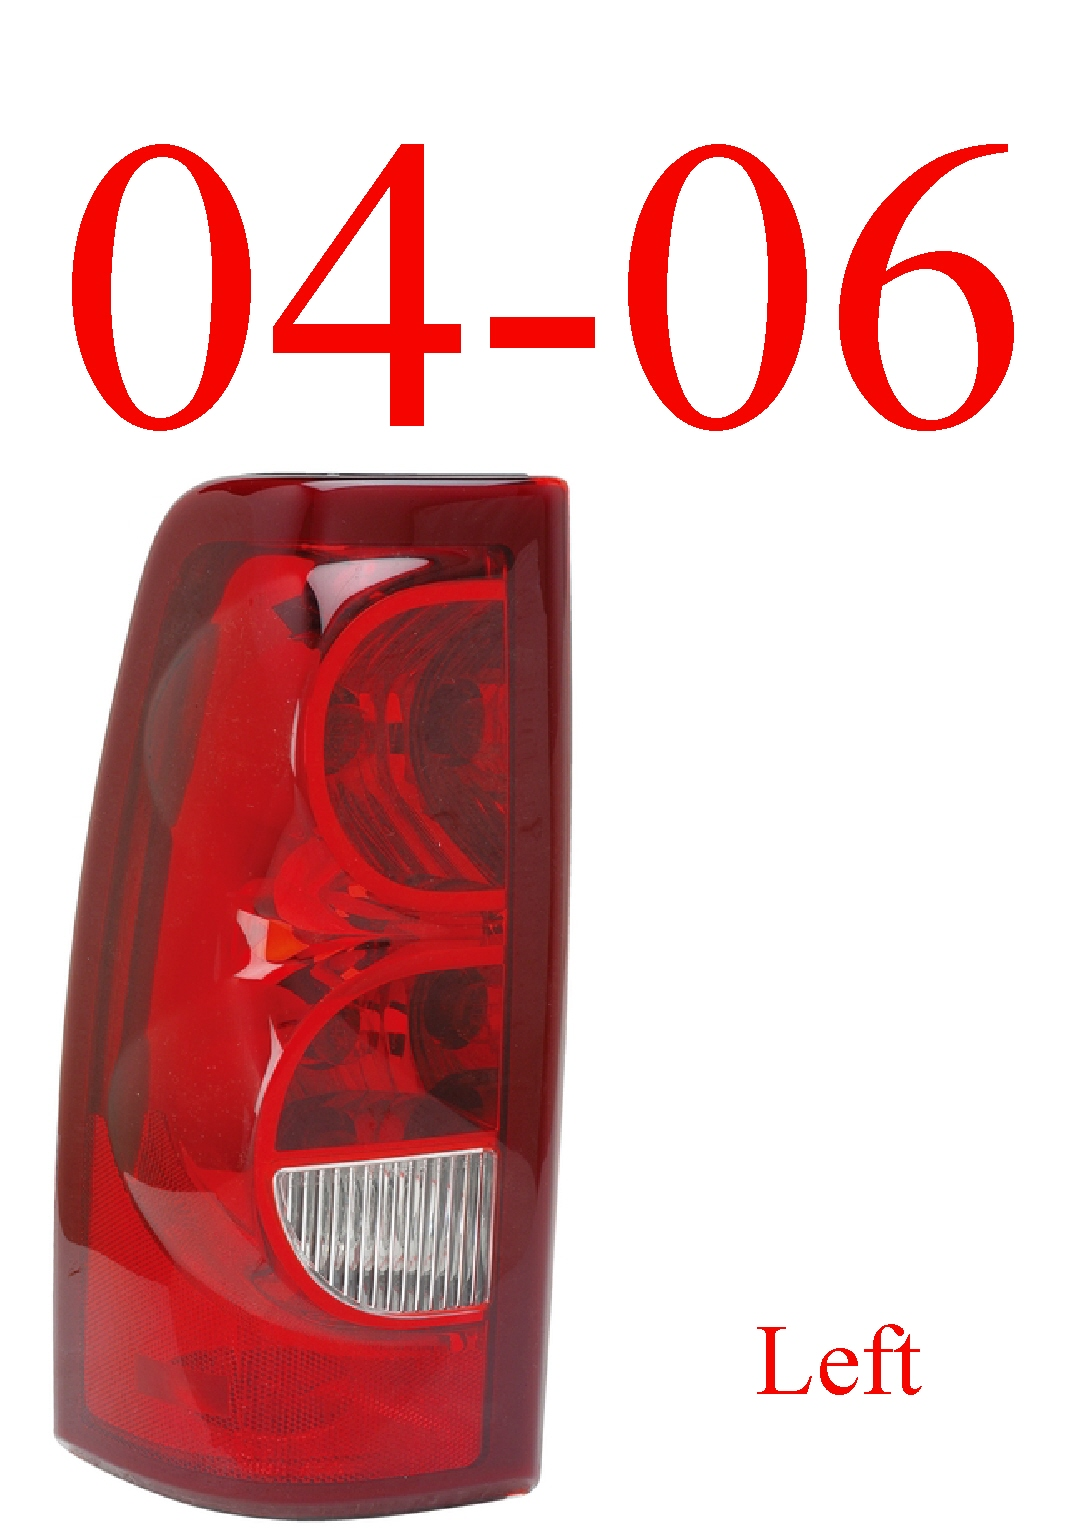 04-06 Chevy Left Tail Light, Silverado